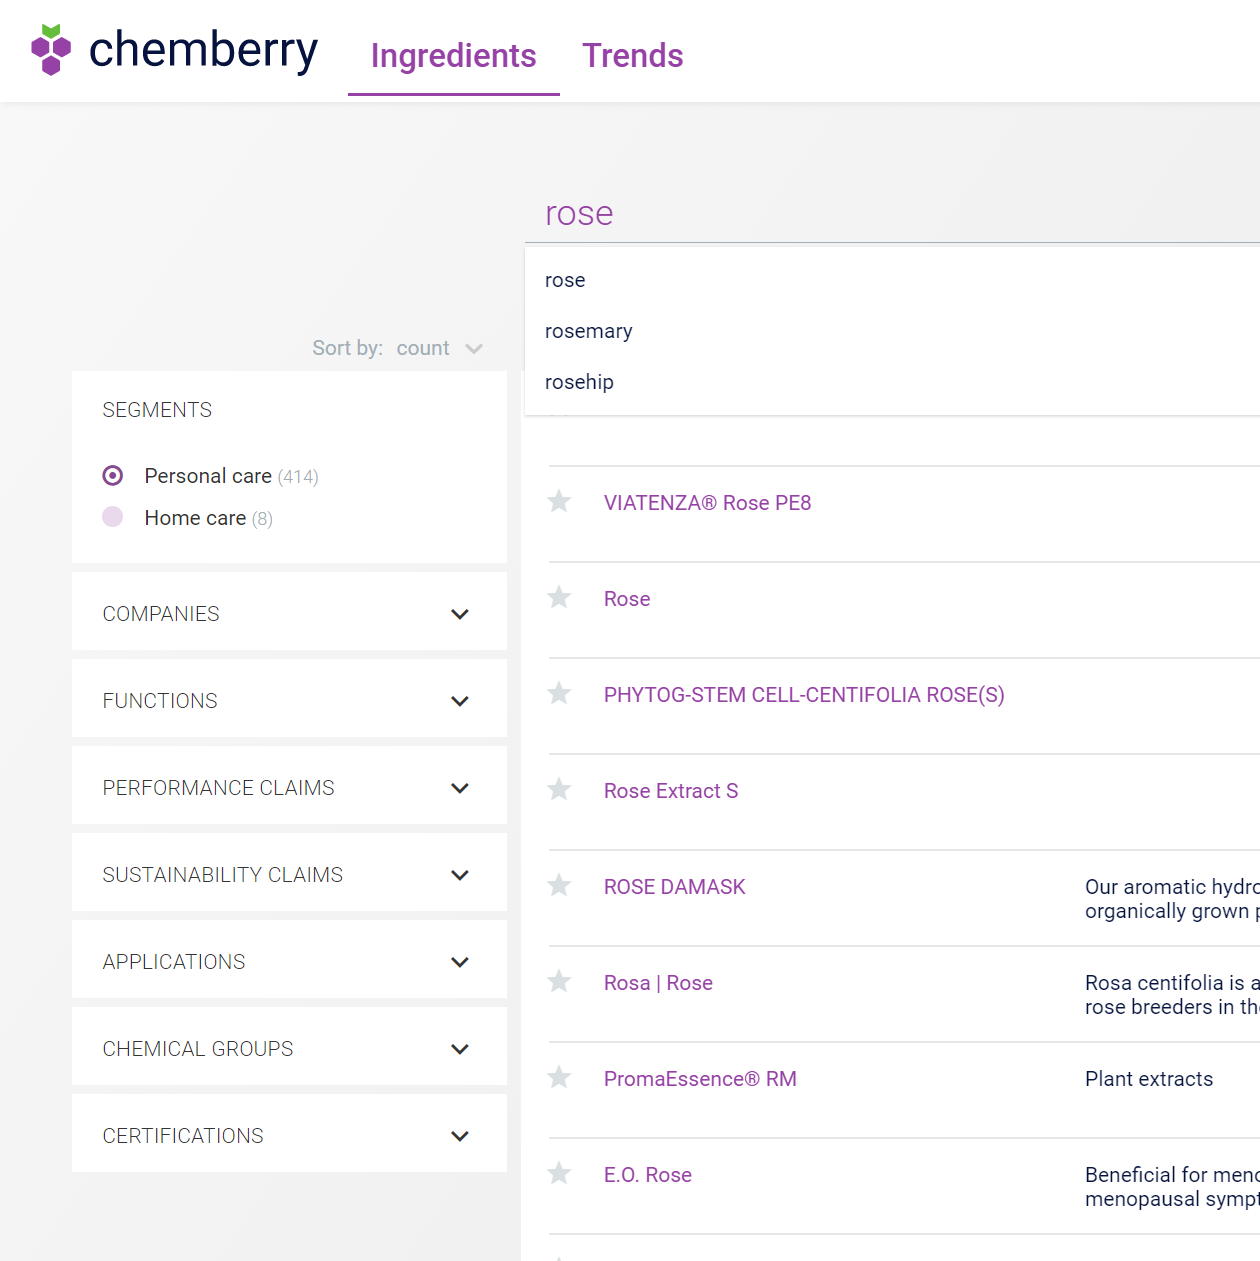 Chemberry search term rose